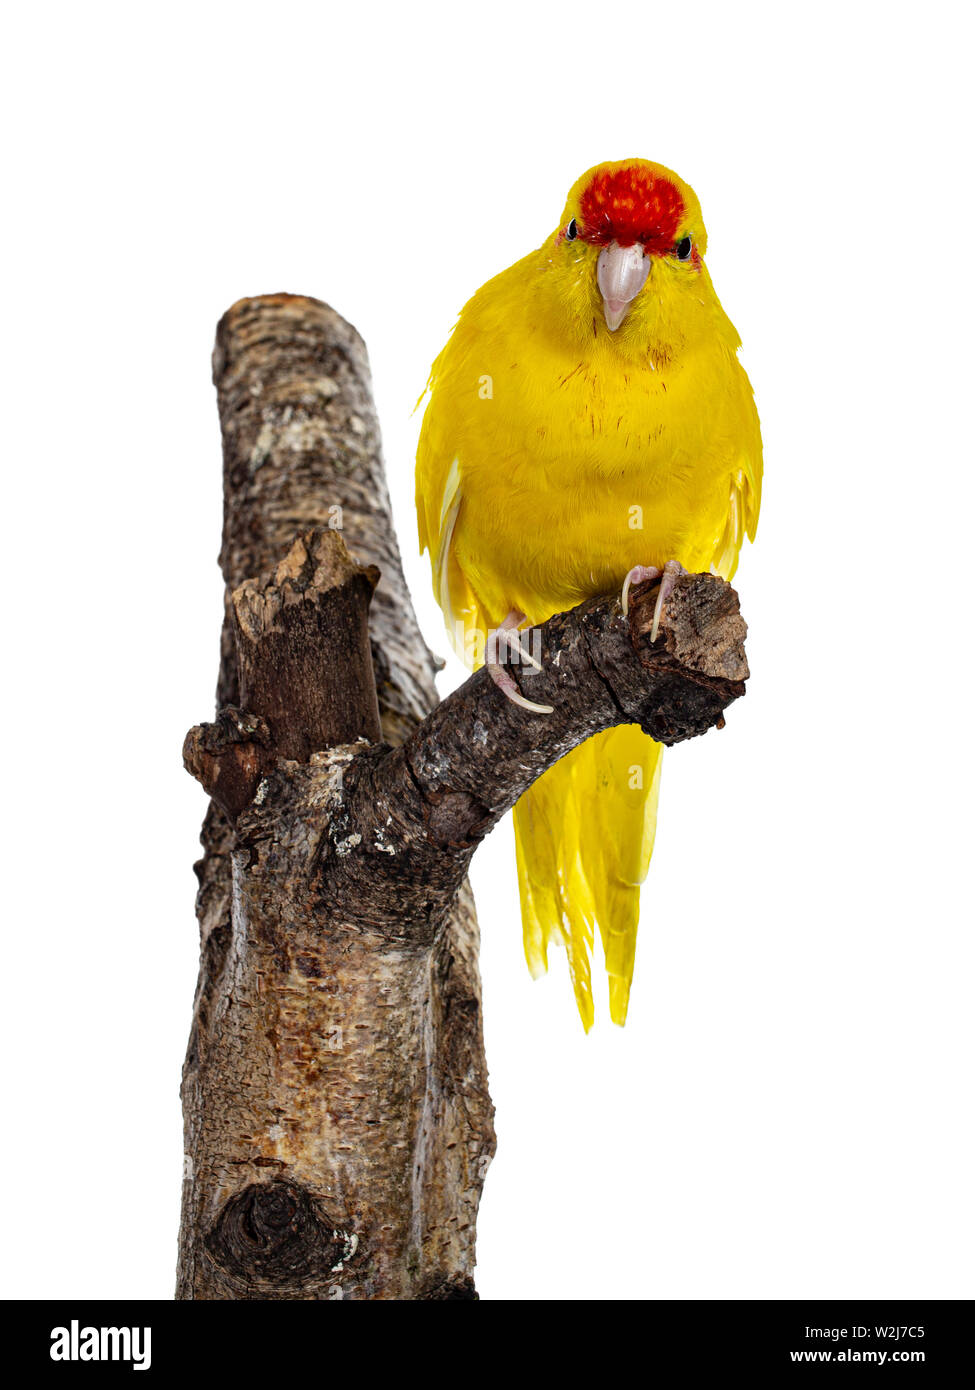 Red crowned yellow Kakariki bird, sitting facing front on part of tree. Showing both eyes to camera. Isolated on white background. - Stock Image